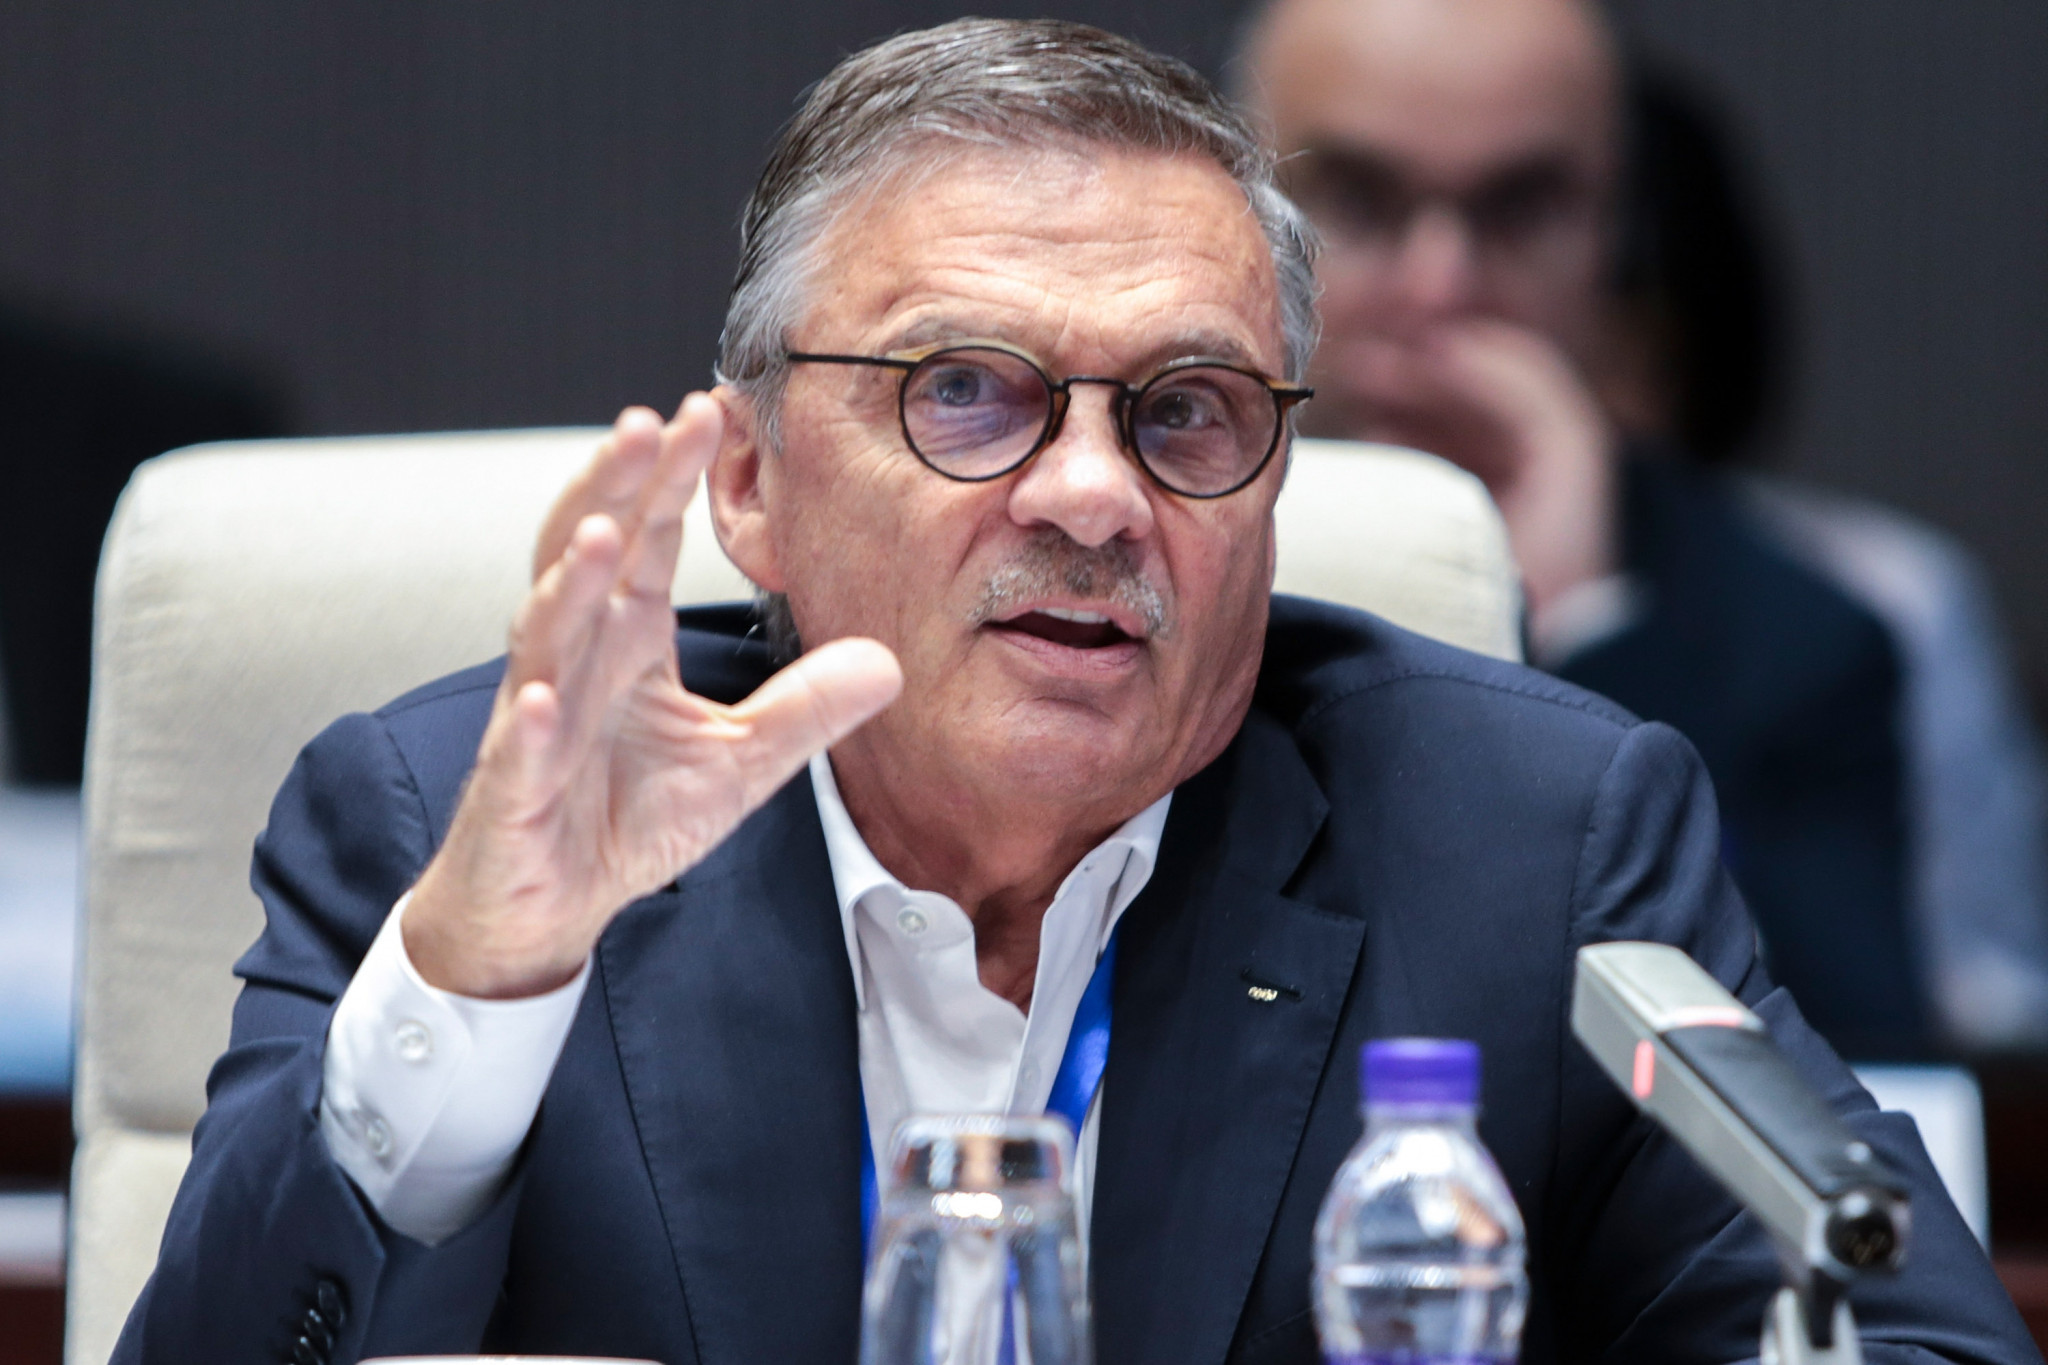 IIHF President Rene Fasel has said plans for the World Championship remain unchanged ©Getty Images